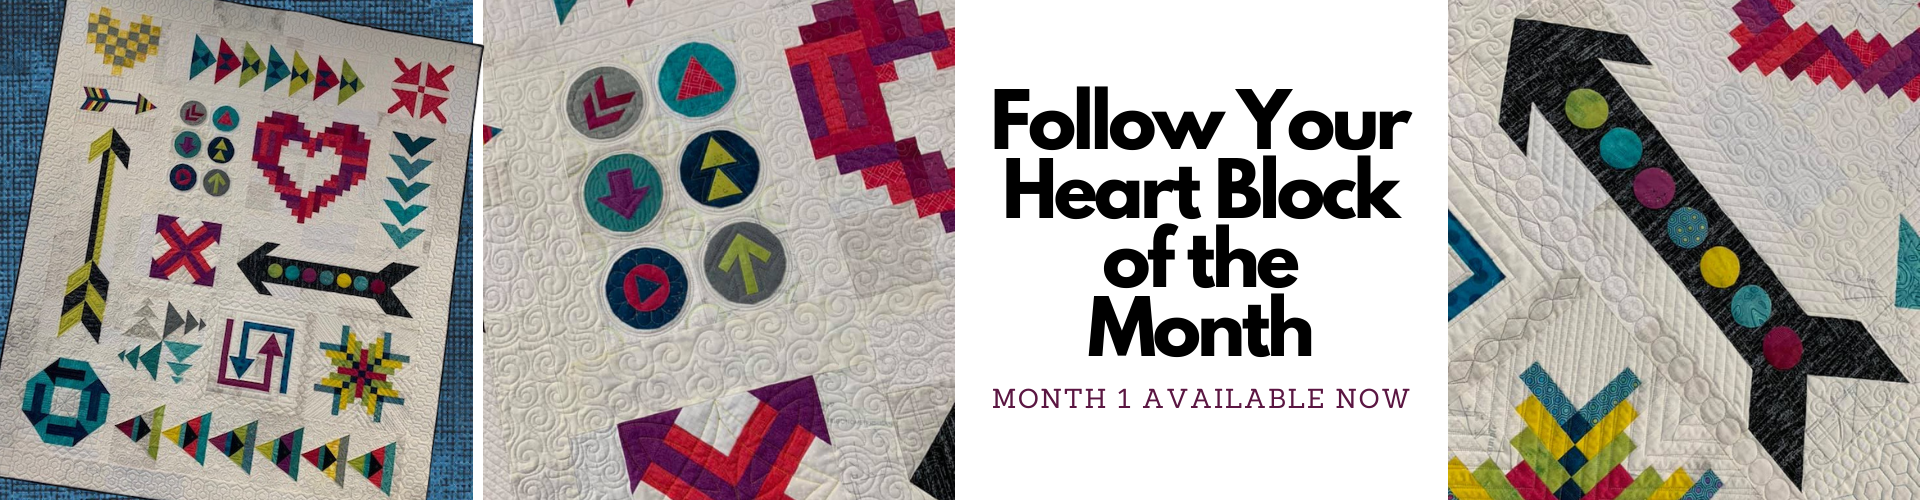 Follow Your Heart Block of the Month